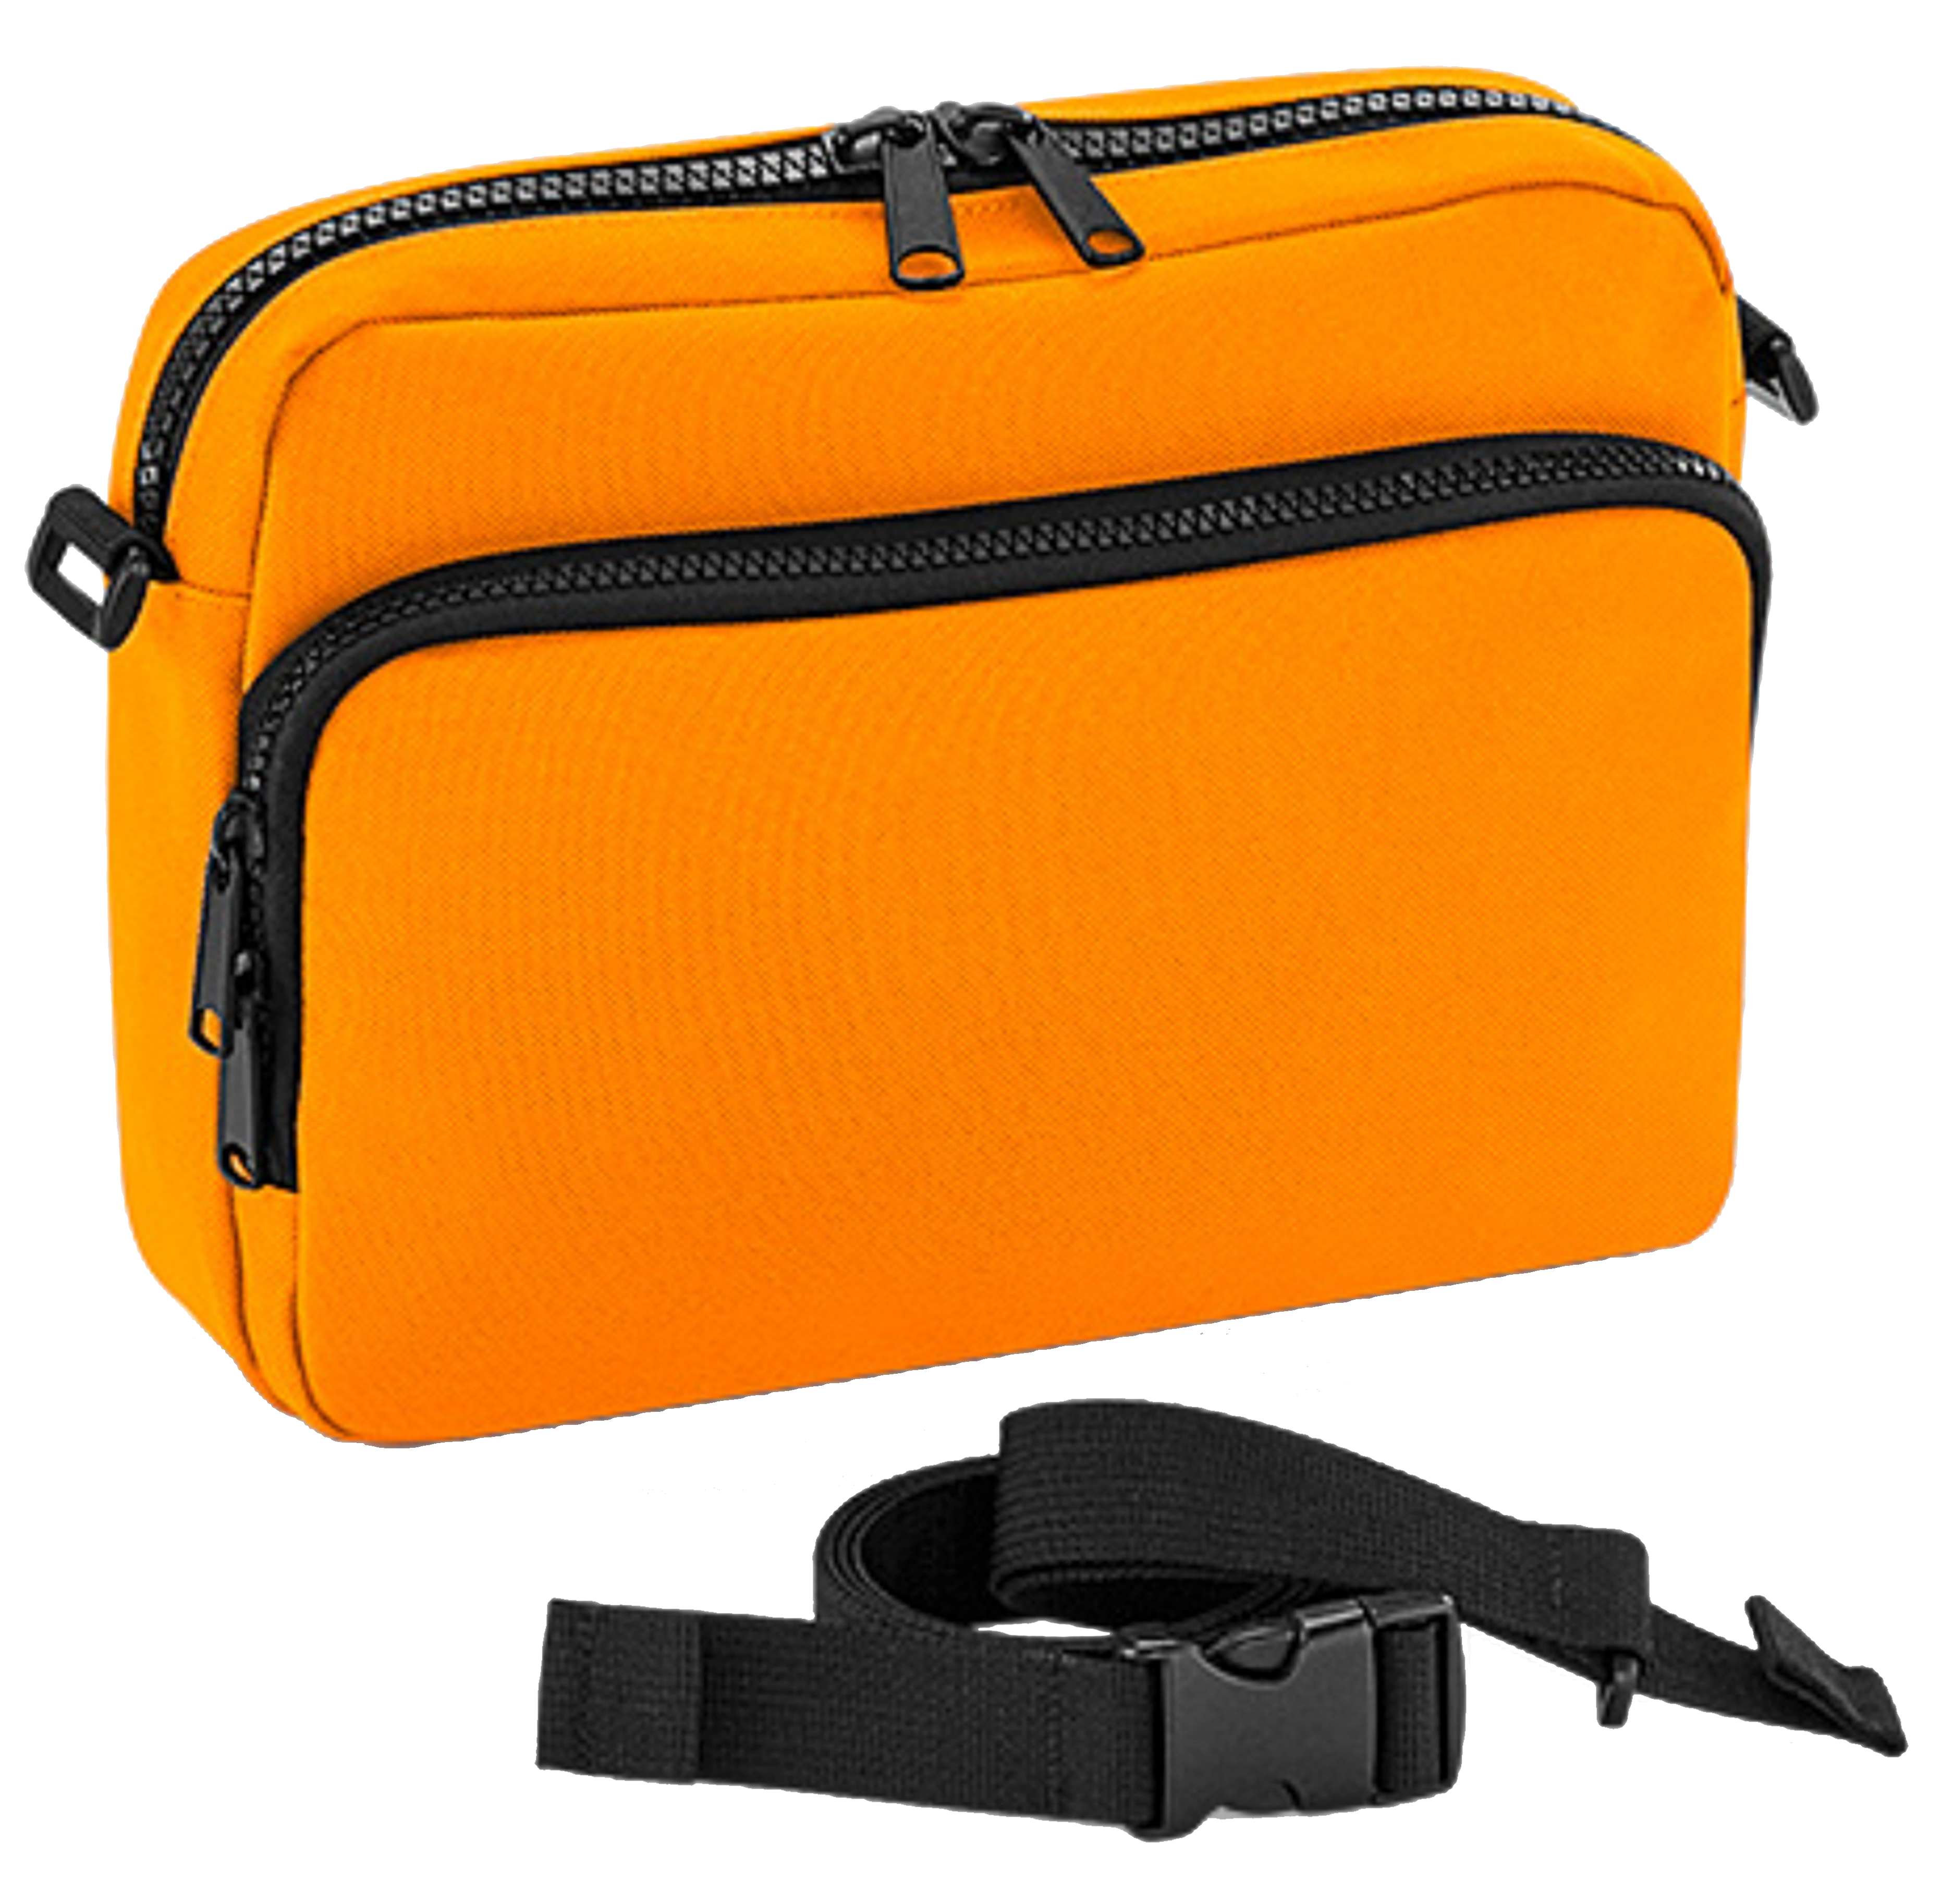 BG242_ModulR_8482__2_Litre_Multipocket_orange_mit_Riemen